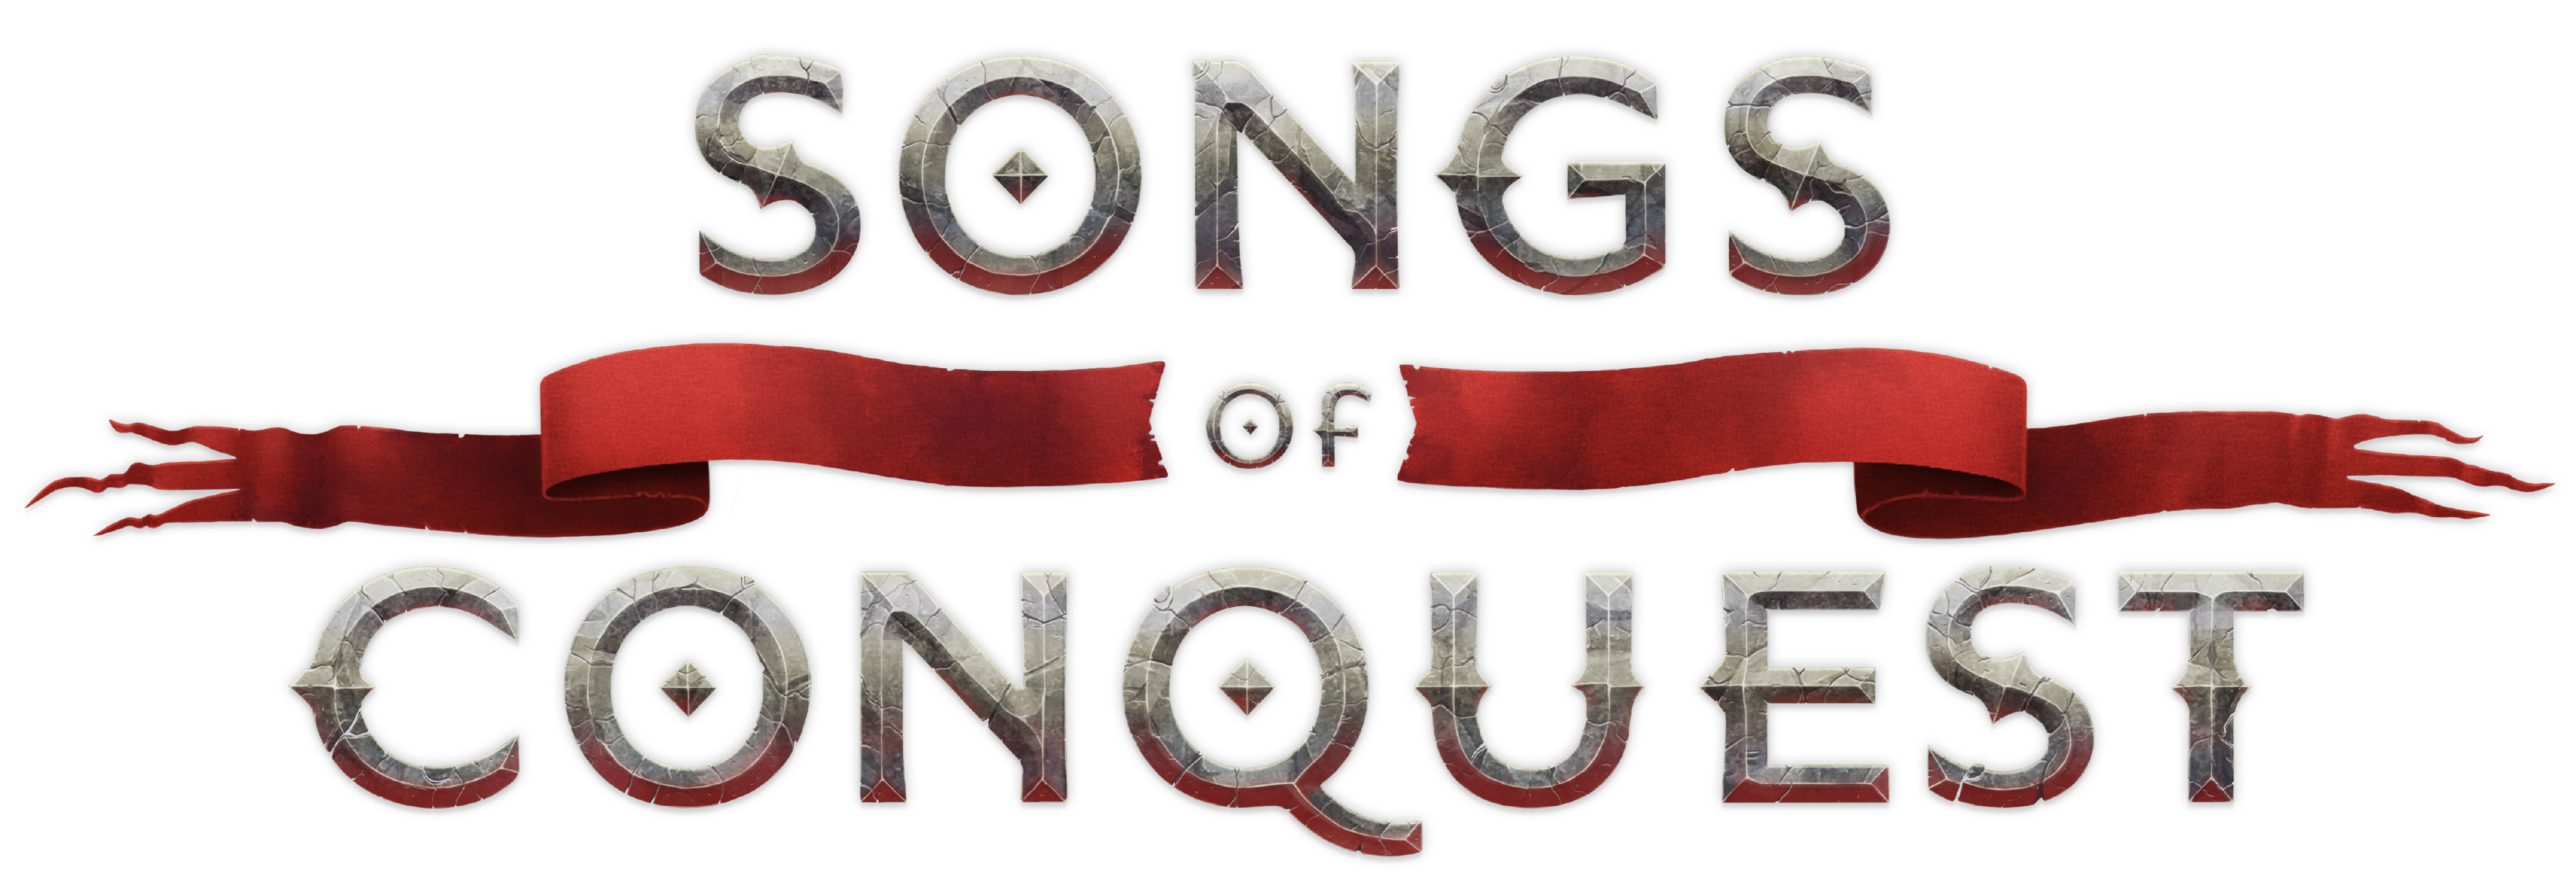 SongsOfConquest-game-logotype-FULLCOLOR.png